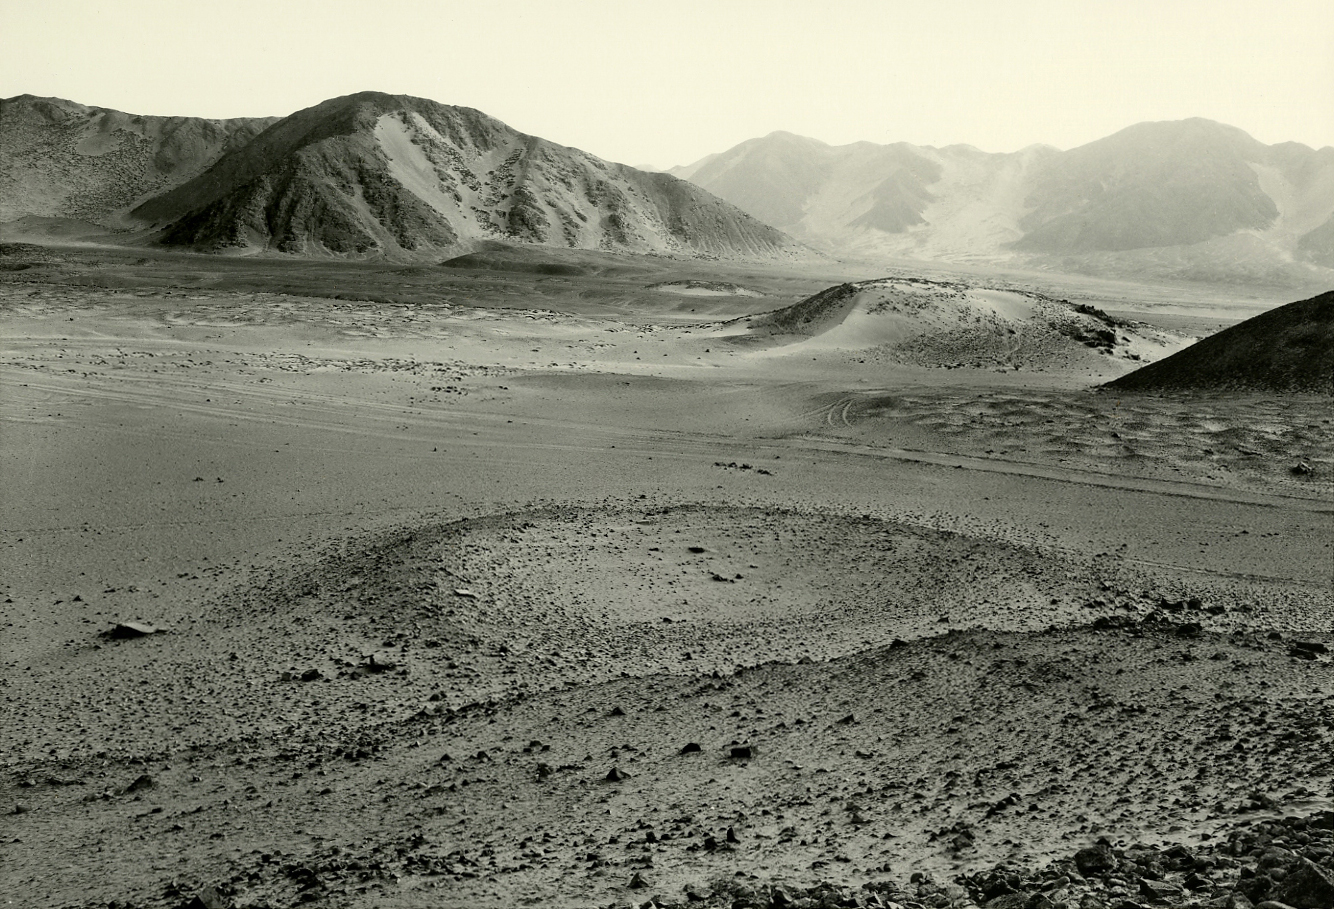 Caral, Supe Valley | photograph by Edward Ranney